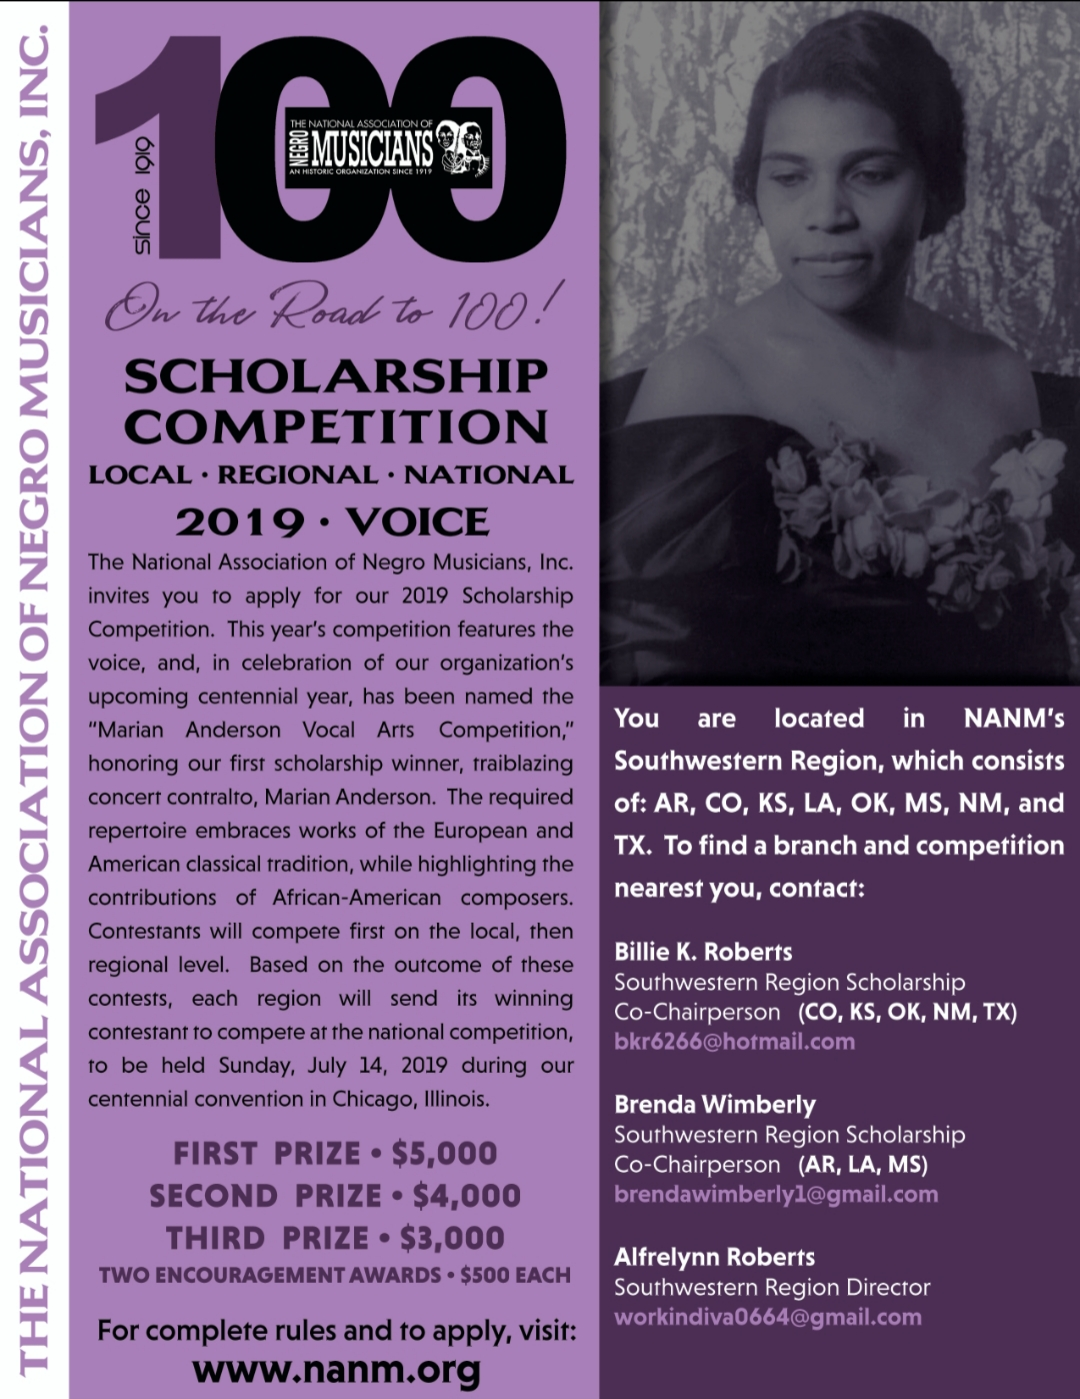 """It was in 1919 — 100 years ago — that a young, unknown classical singer won the first scholarship from the National Association of Negro Musicians, founded that same year. Marian Anderson went on to become one of the 20th century's most celebrated concert contraltos. She died in 1993 at age 96.  Now young musical hopefuls from the Dallas-Fort Worth area and throughout the Southwest can compete in association's centennial year for the same scholarship that Anderson won. The Marian Anderson Vocal Arts Competition will begin at the local level before advancing to regional and national rounds. Required repertoire includes works of American and European classical tradition and highlights the works of African-American composers.  This is the first year the competition is named in Anderson's honor. Winners will be announced July 14 at the centennial convention in Chicago. First-, second- and third-place prizes are $5,000, $4,000 and $3,000, respectively. Two """"encouragement"""" awards of $500 also will be given.  Applications, including a $50 fee, are due Feb. 8. Visit www.nanm.org to apply.  The Dallas Metroplex Musicians' Association promotes this area. To find a branch near you, contact local/regional co-chairs Billie Roberts at bkr6266@hotmail.com and Brenda Wimberly at brendawimberly1@gmail.com or call 214-808-4587 or 682-587-9646."""